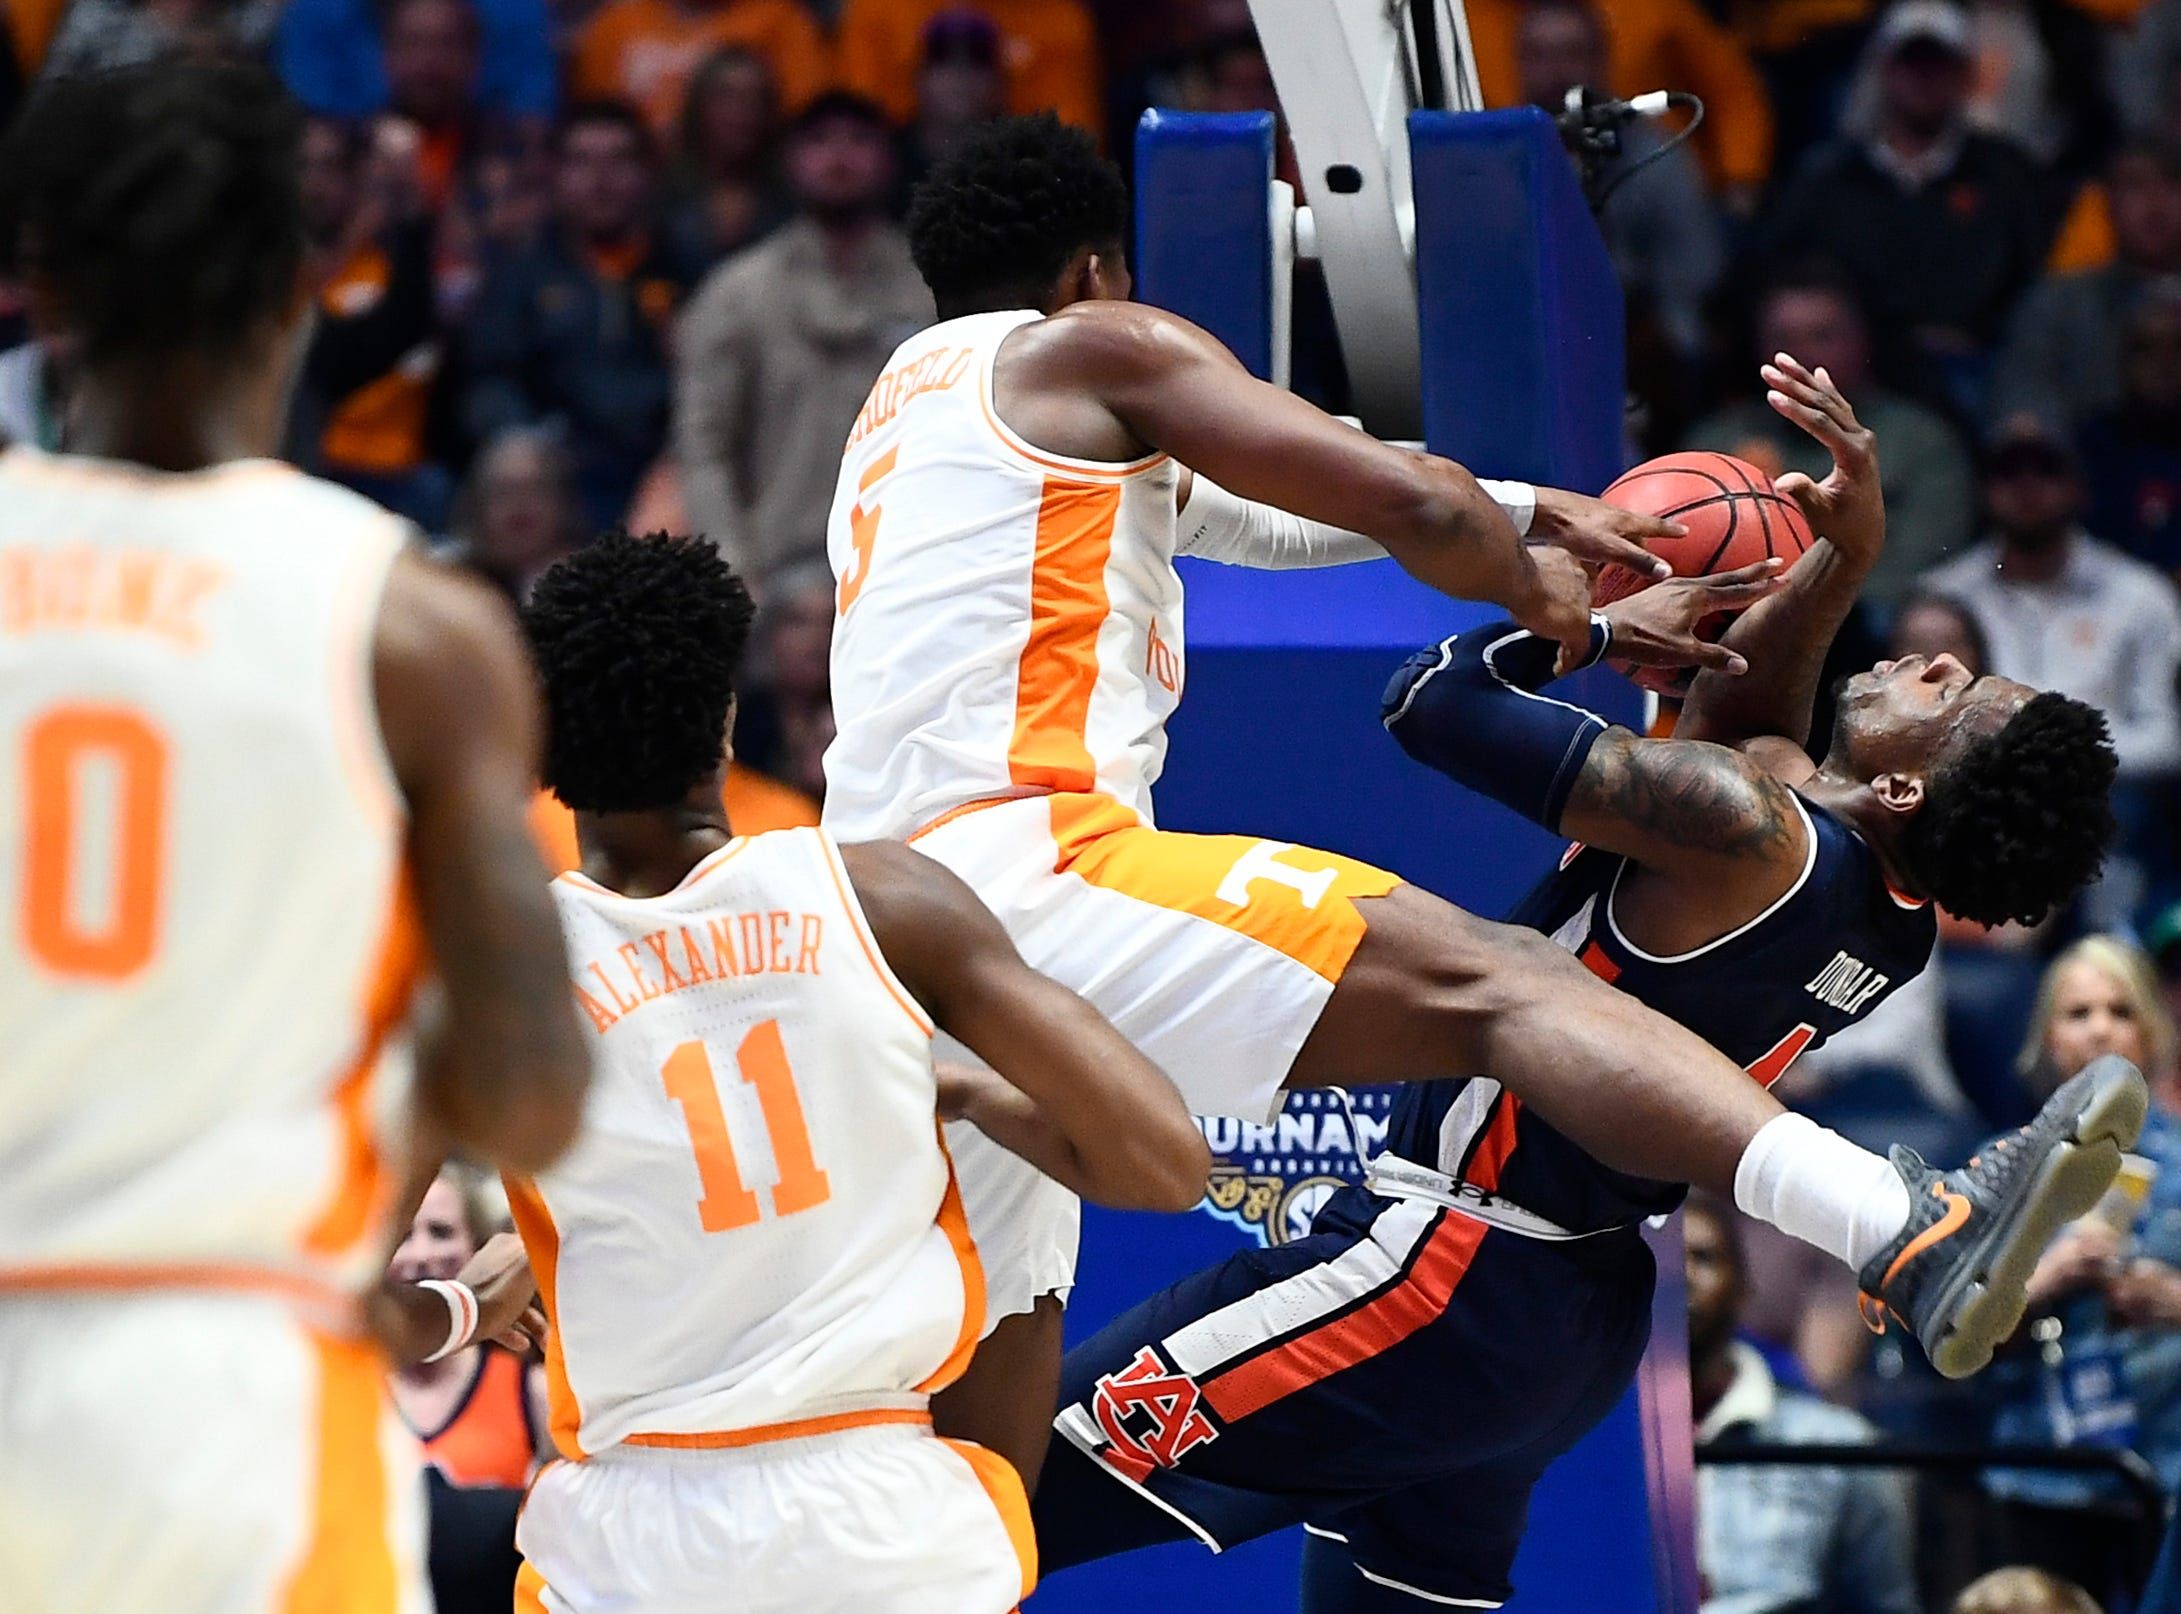 Tennessee guard Admiral Schofield (5) defends Auburn forward Malik Dunbar (4) during the second half of the SEC Men's Basketball Tournament championship game at Bridgestone Arena in Nashville, Tenn., Sunday, March 17, 2019.